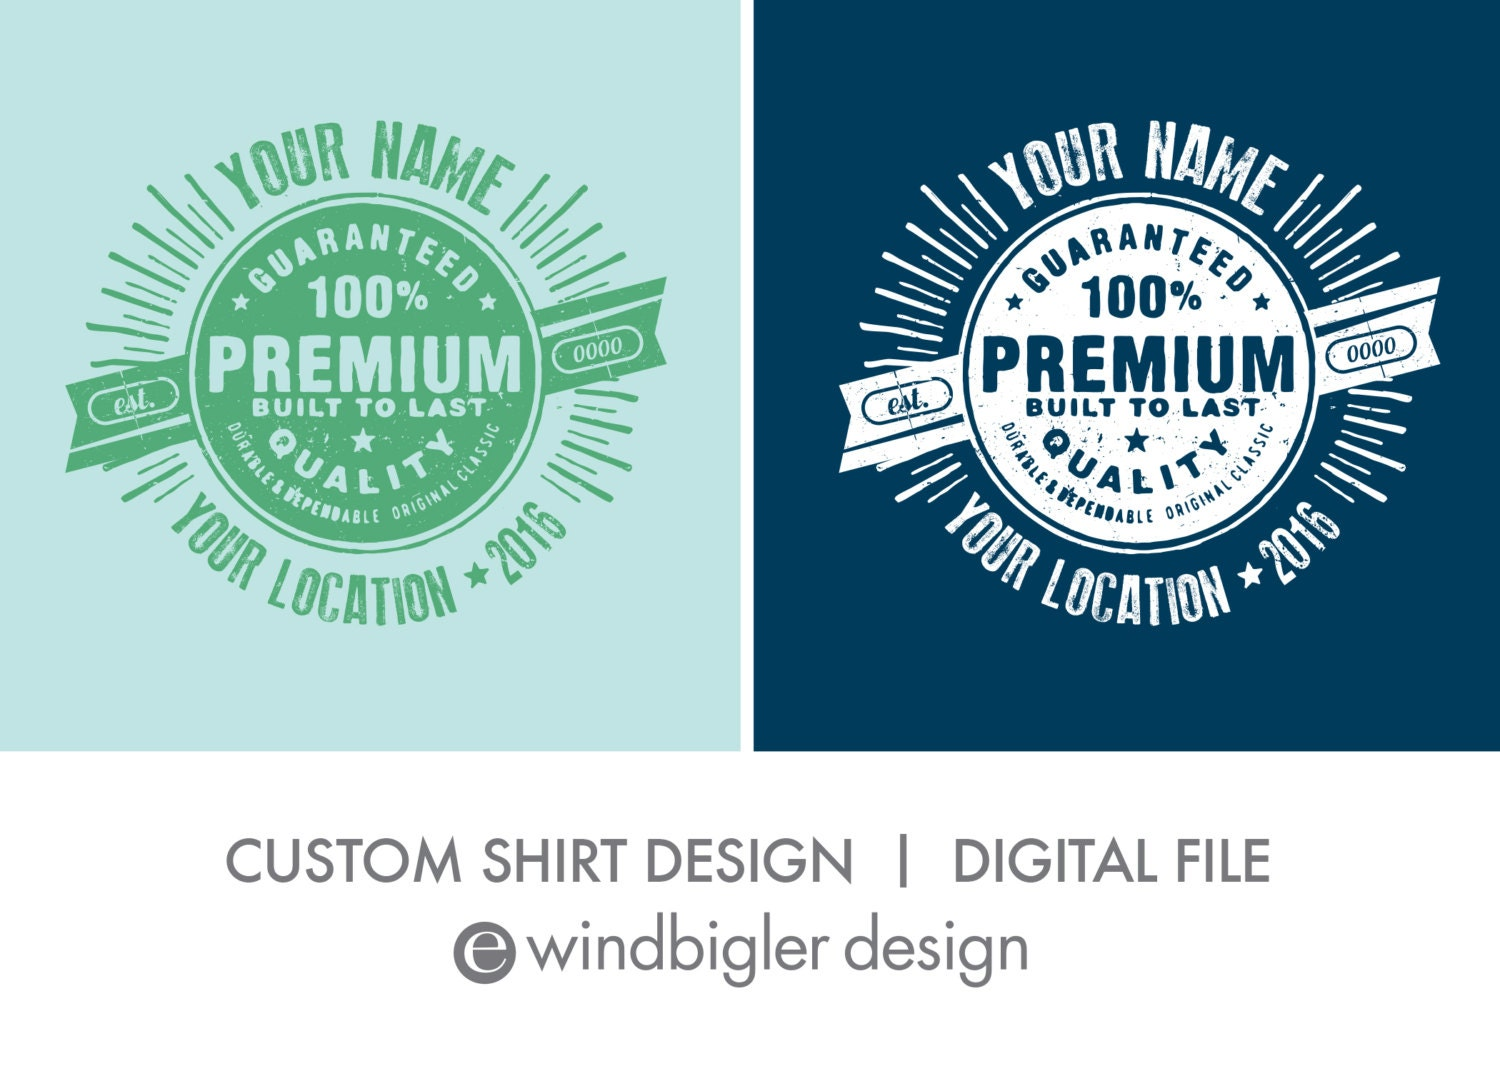 family reunion shirt custom graphic design - Family Reunion Shirt Design Ideas